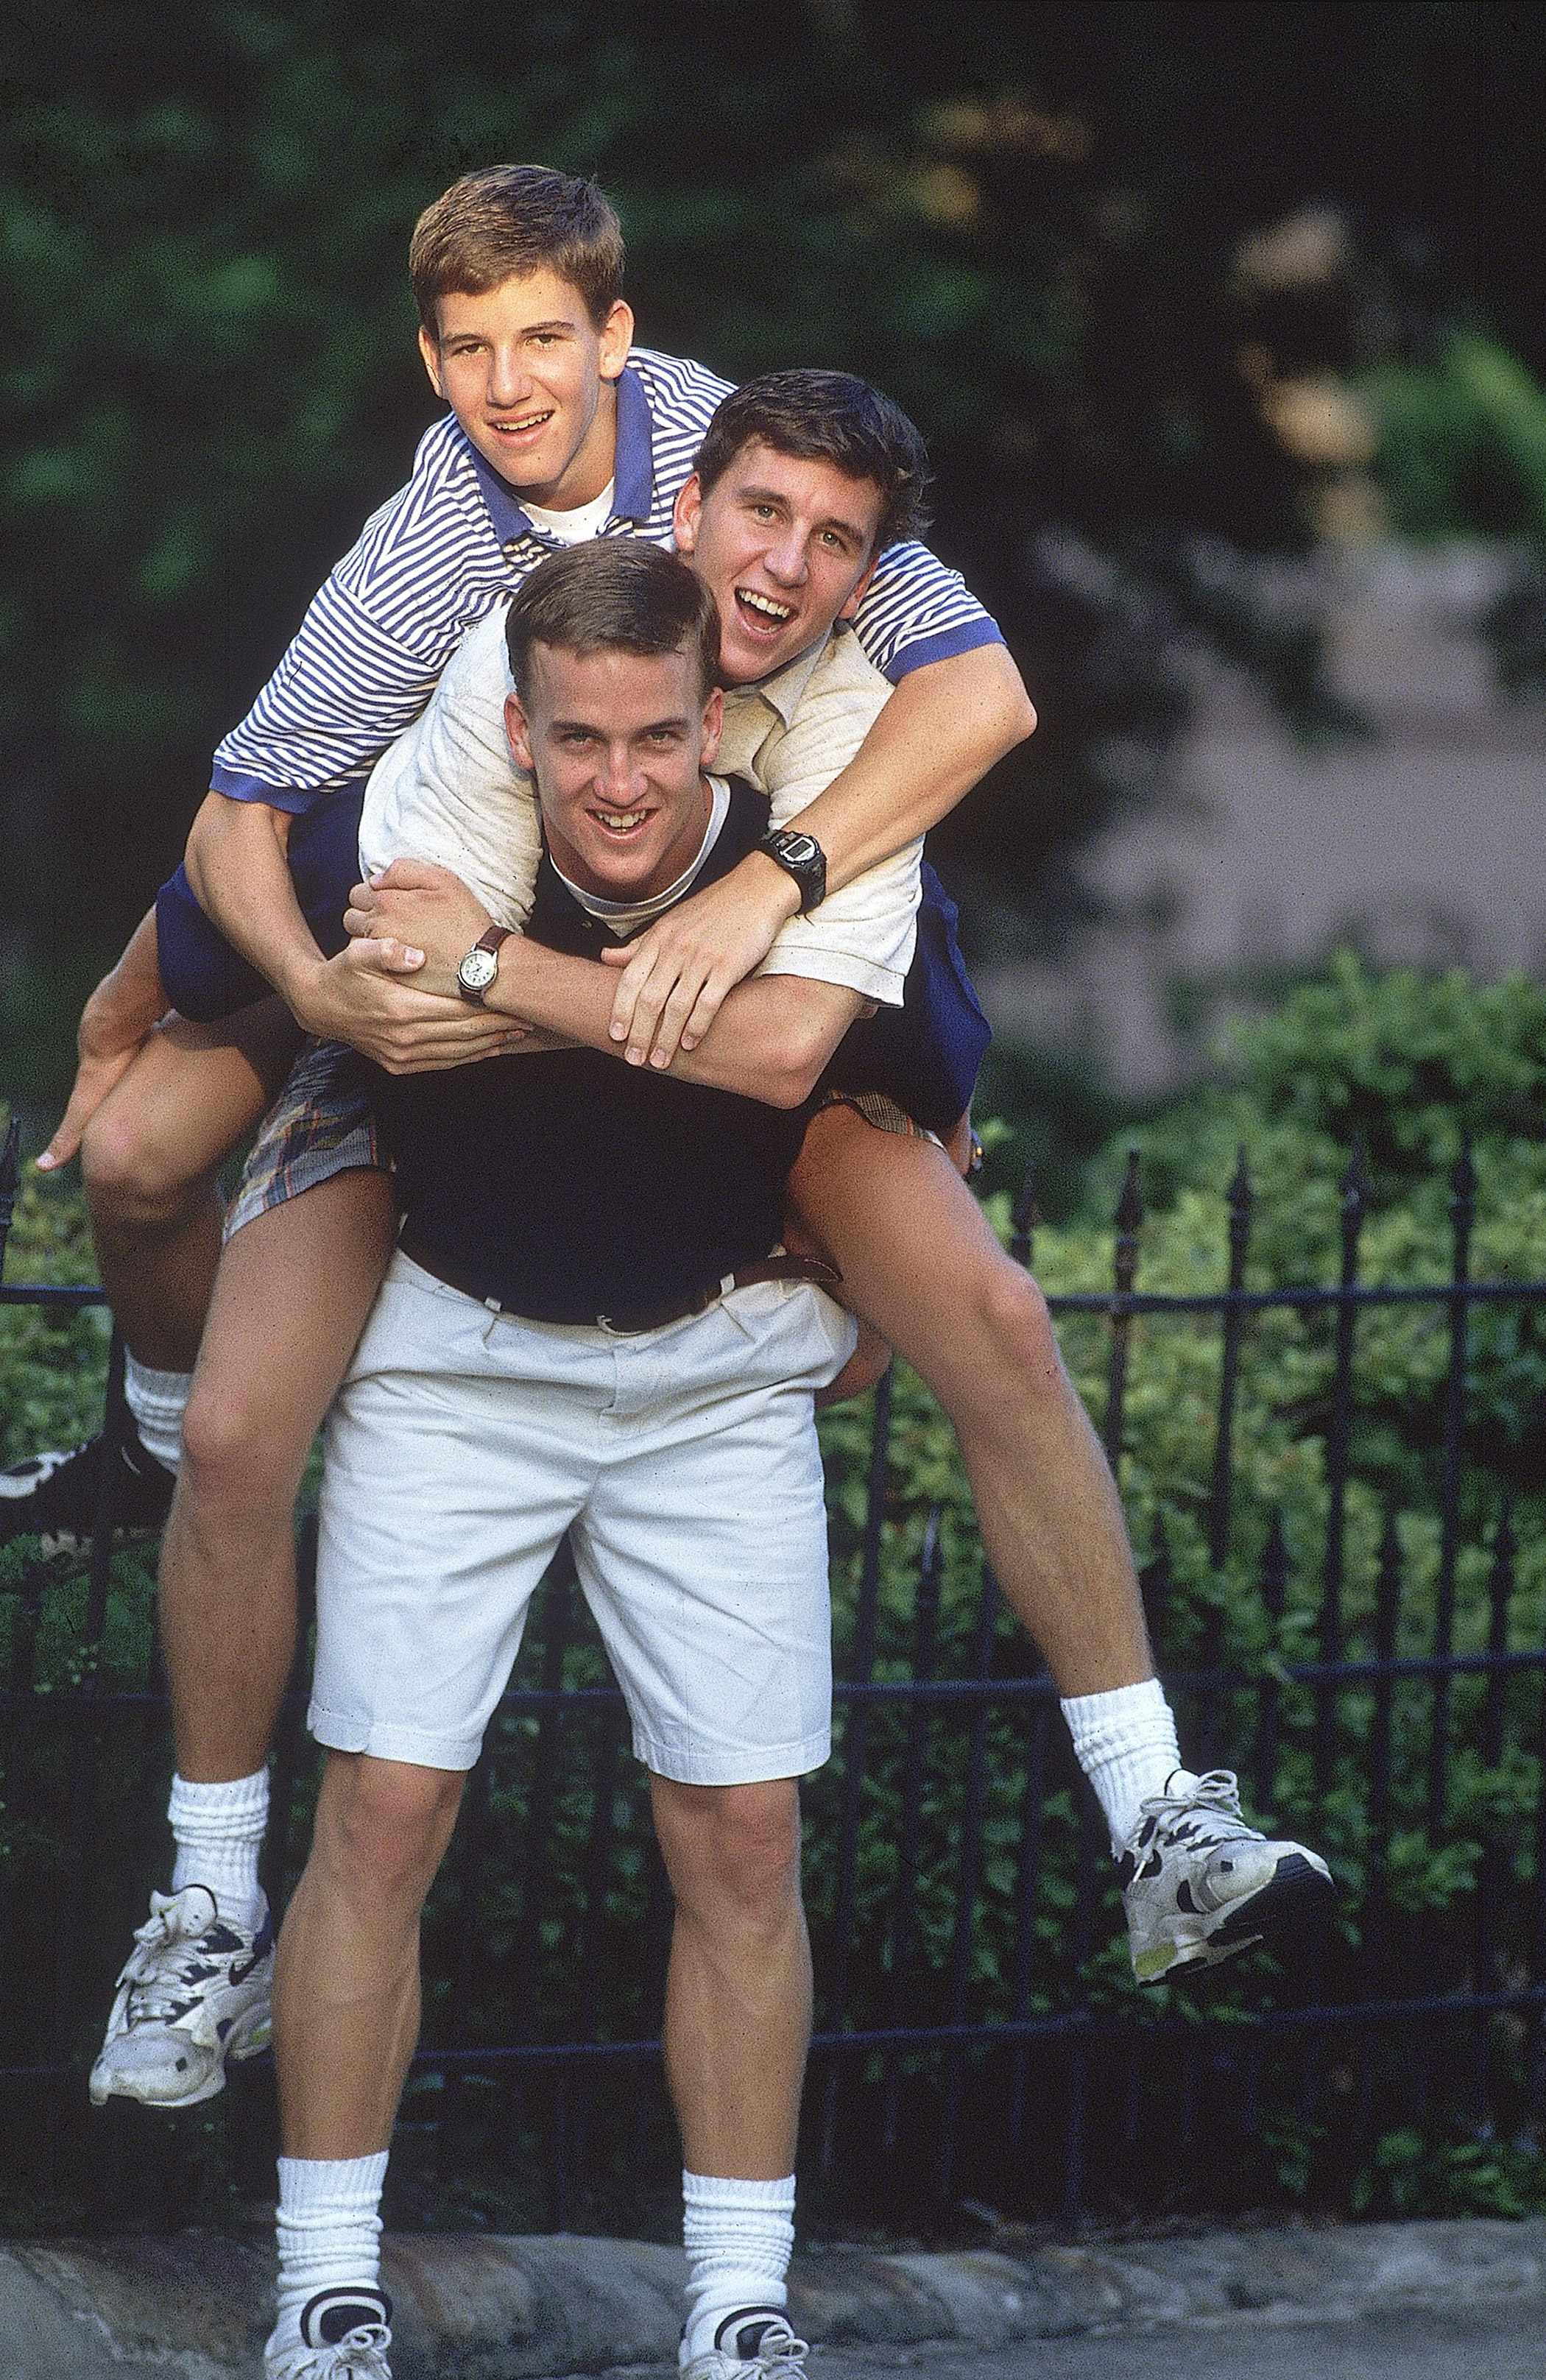 Tennessee quarterback Peyton Manning carrying brothers Eli and Cooper on back.                                   New Orleans, LA 7/11/1996                                   MANDATORY CREDIT: Bill Frakes/Sports Illustrated                                   SetNumber: X51068